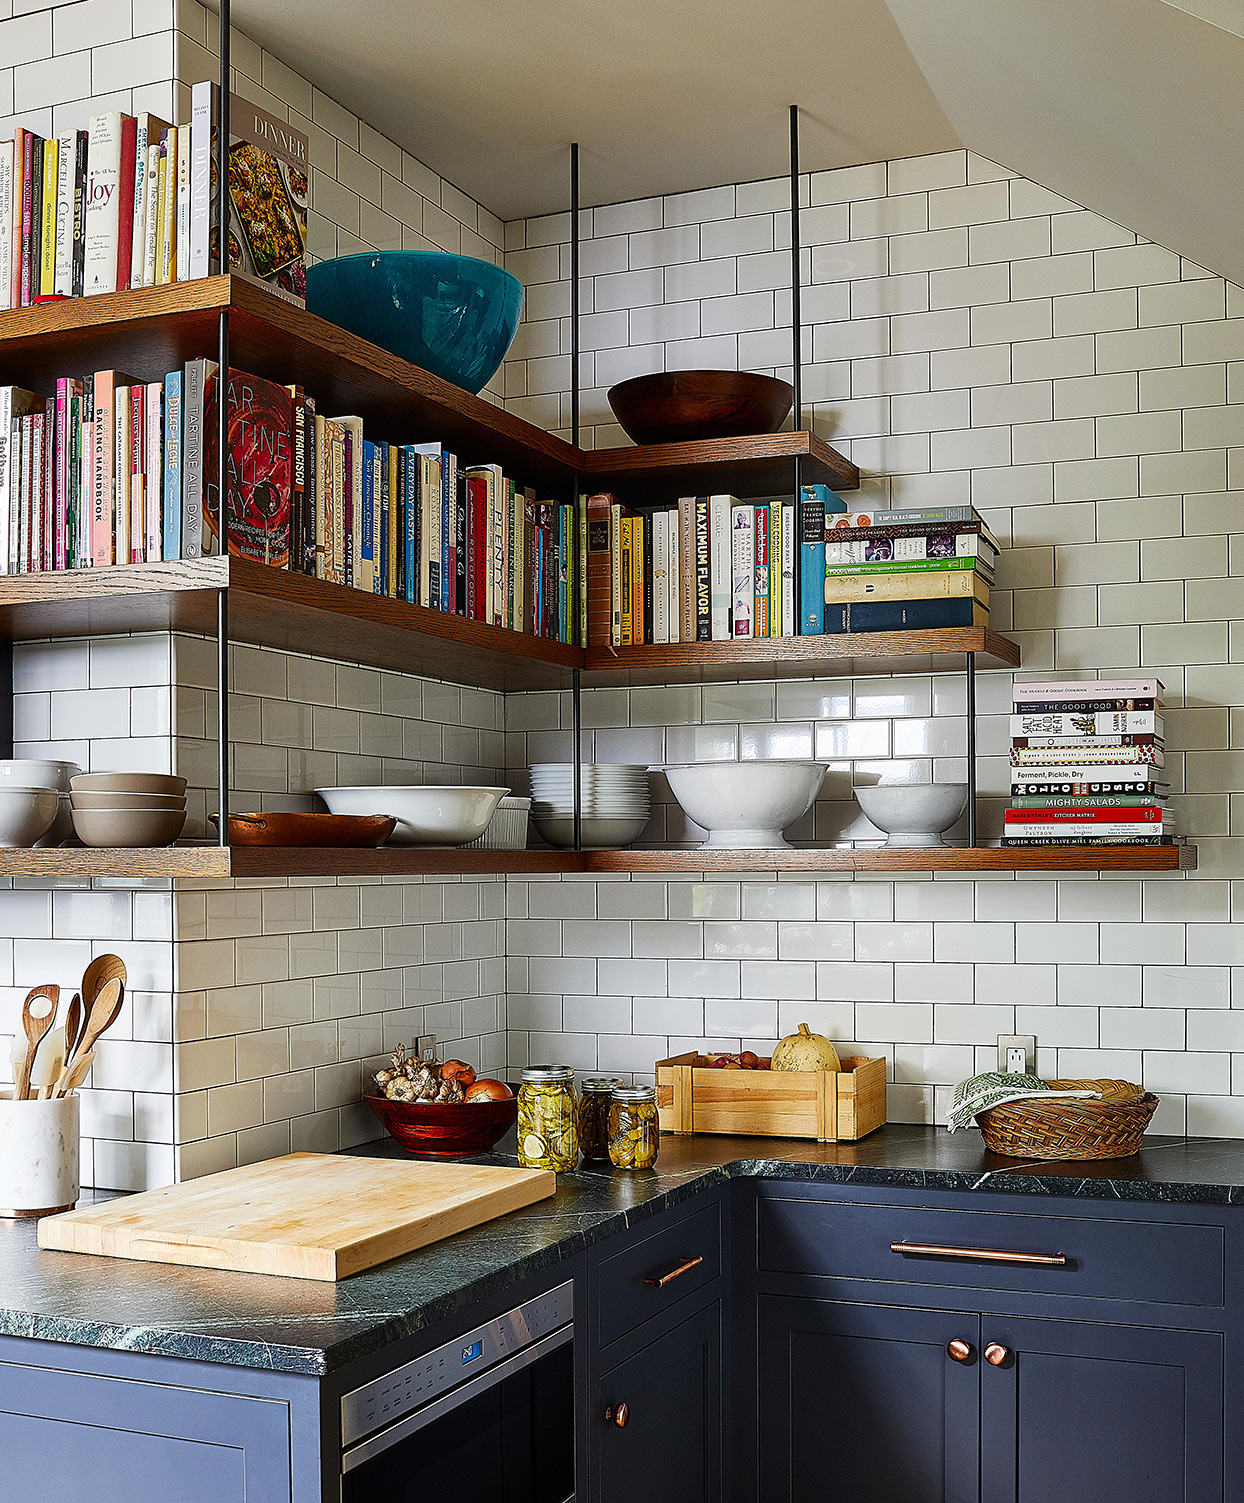 kitchen corner with blue cabinets and hanging exposed shelves with cookbooks and dishes